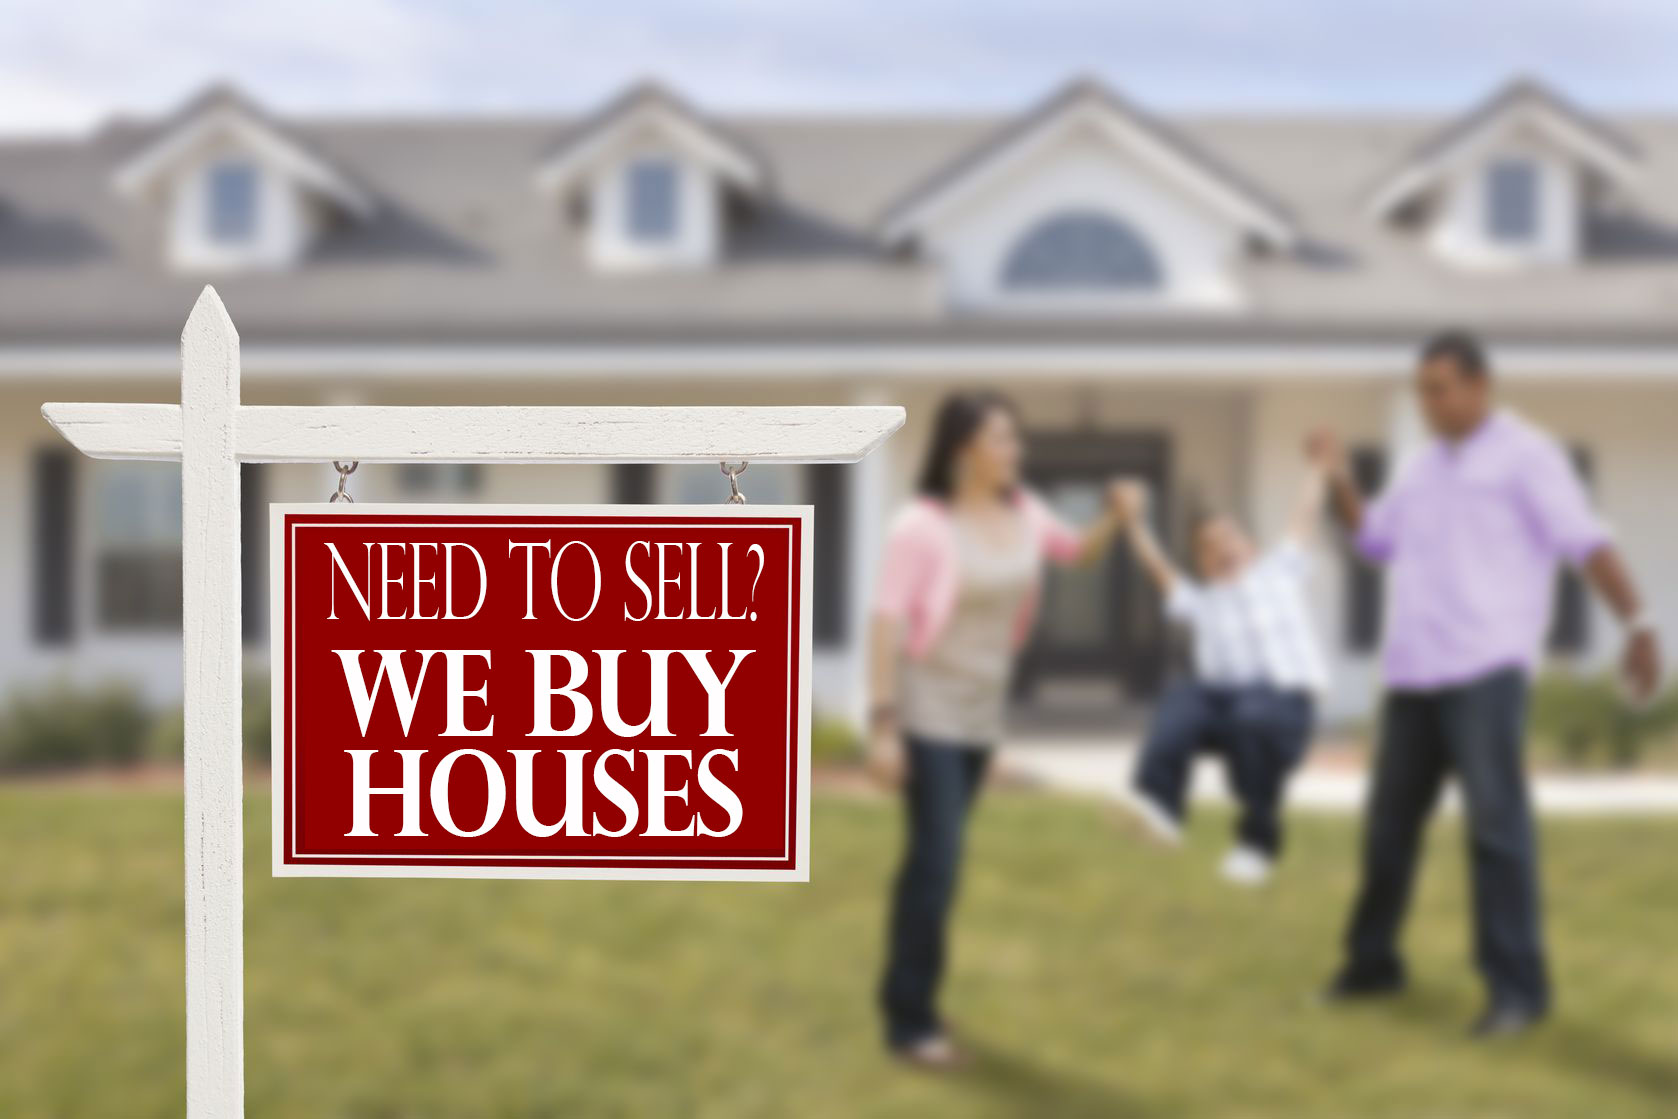 Who Buy Homes Simply Rents – We Buy Houses